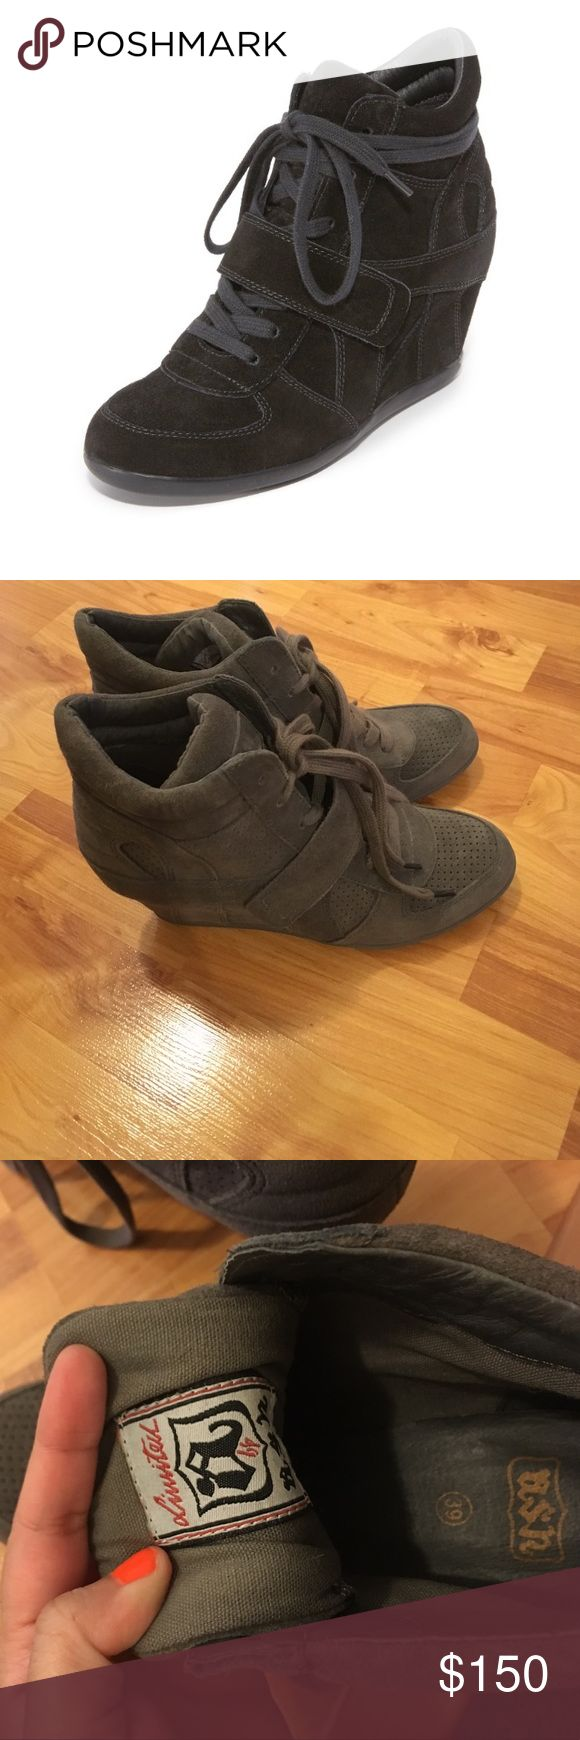 Gray Ash Bowie Wedge Sneakers Ash Bowie Wedge Sneakers / new never worn Ash Shoes